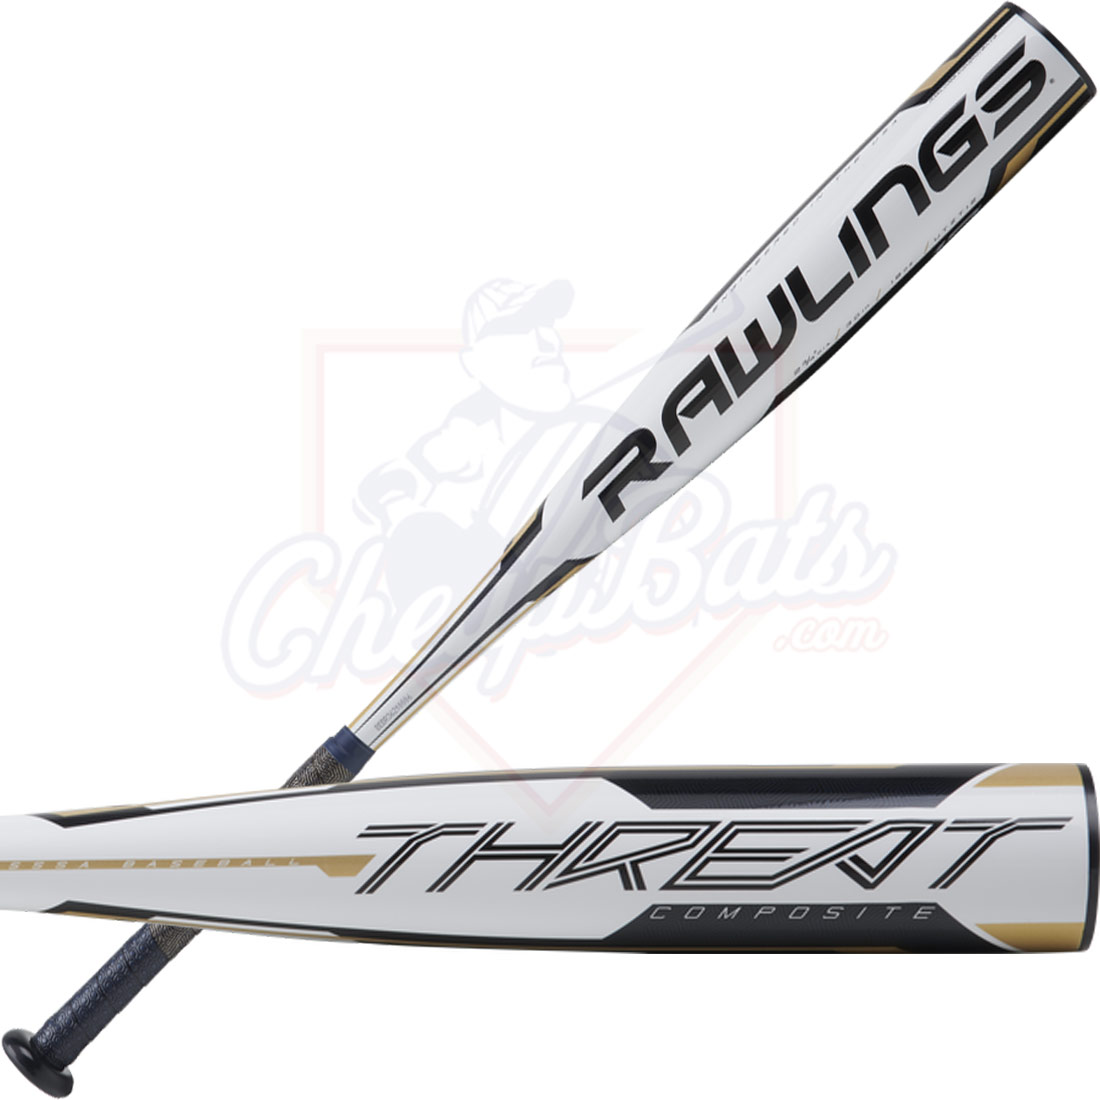 2020 Rawlings Threat Youth USSSA Baseball Bat -12oz UTZT12